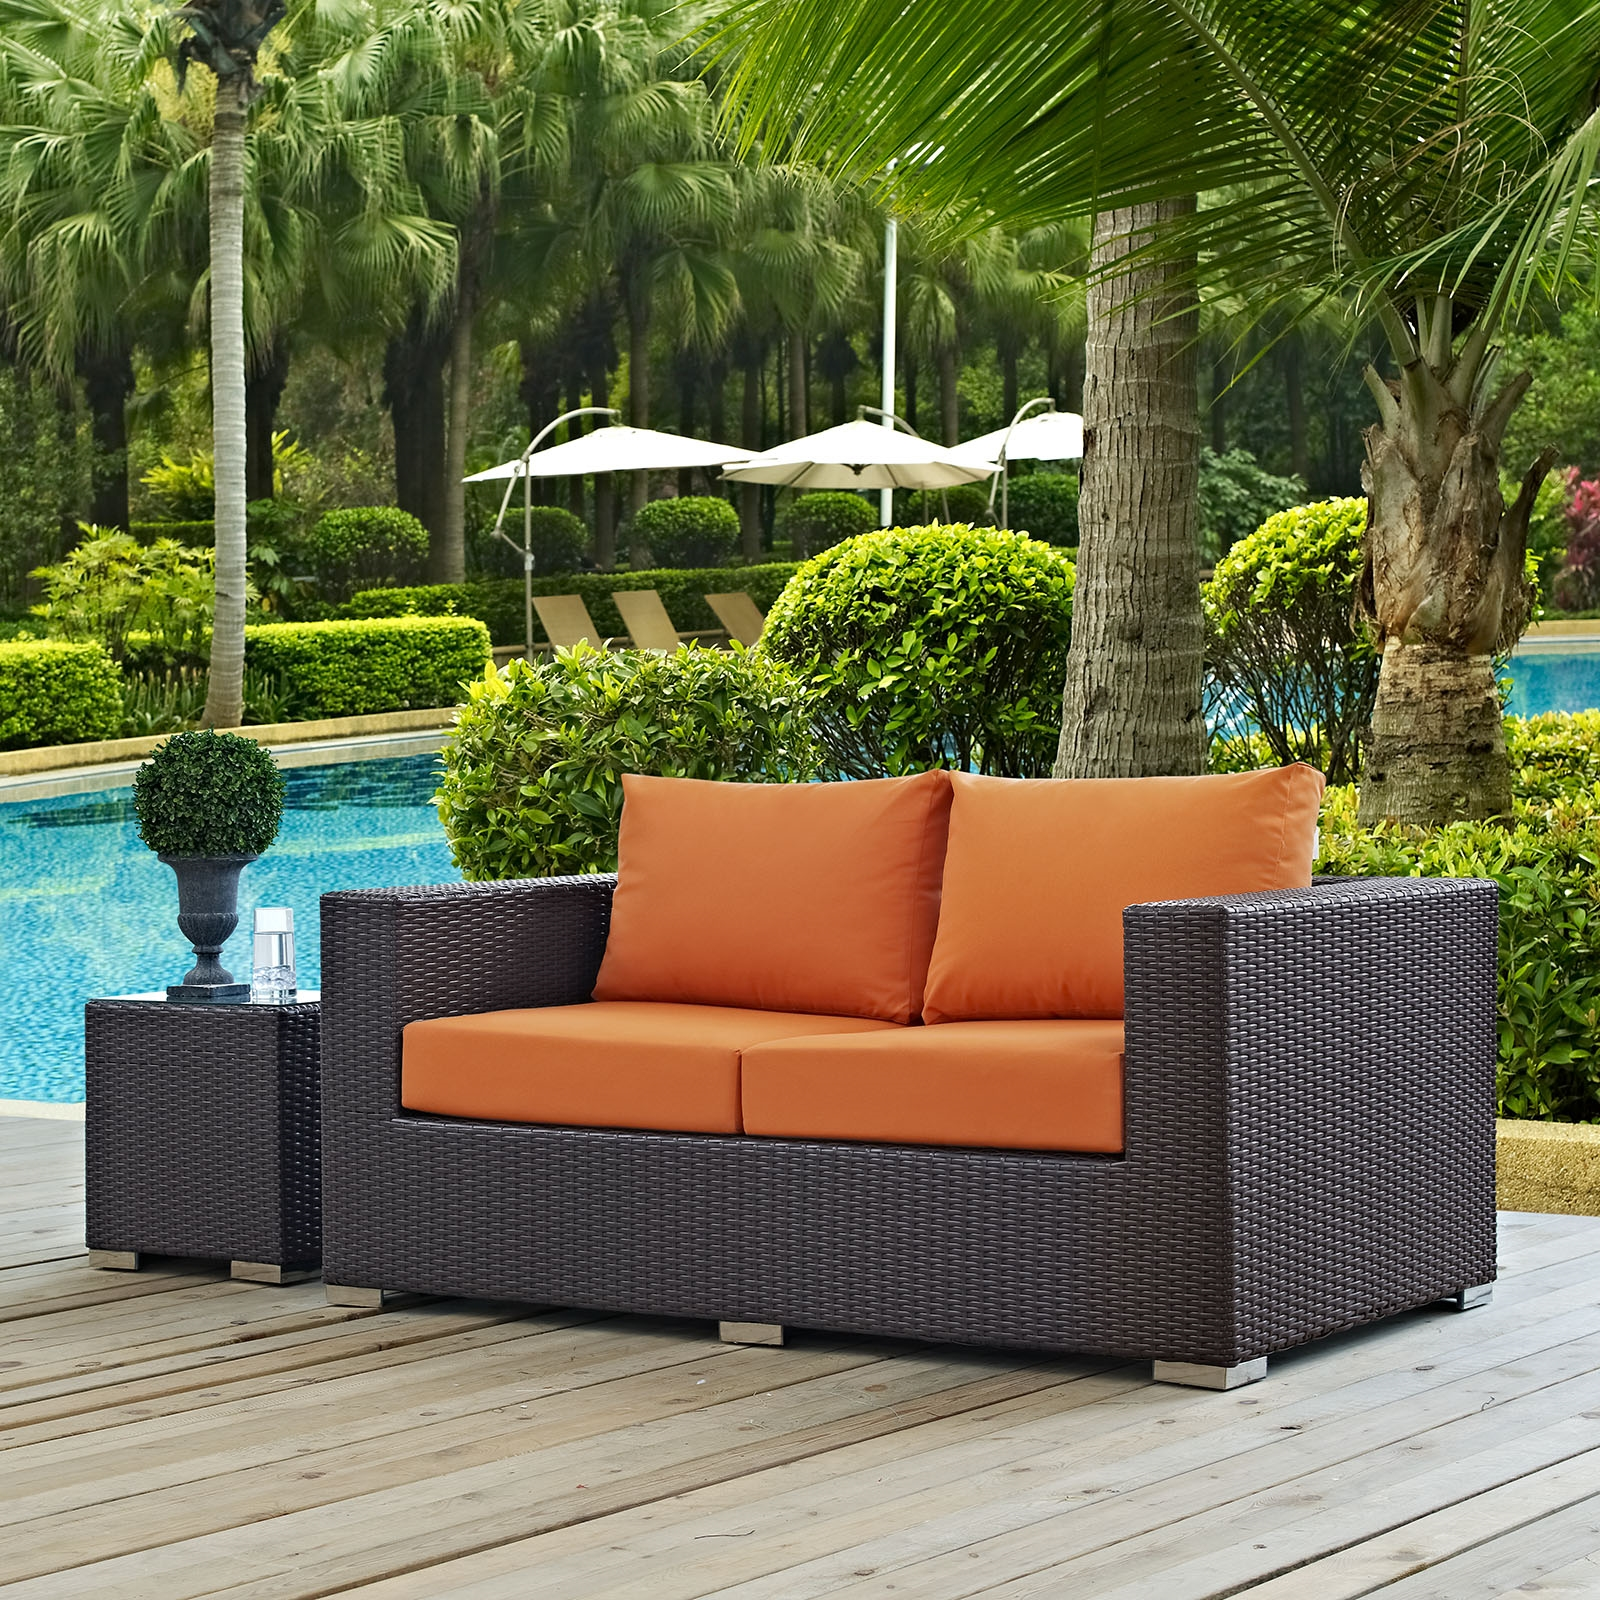 Convene Outdoor Patio Loveseat in Espresso Orange